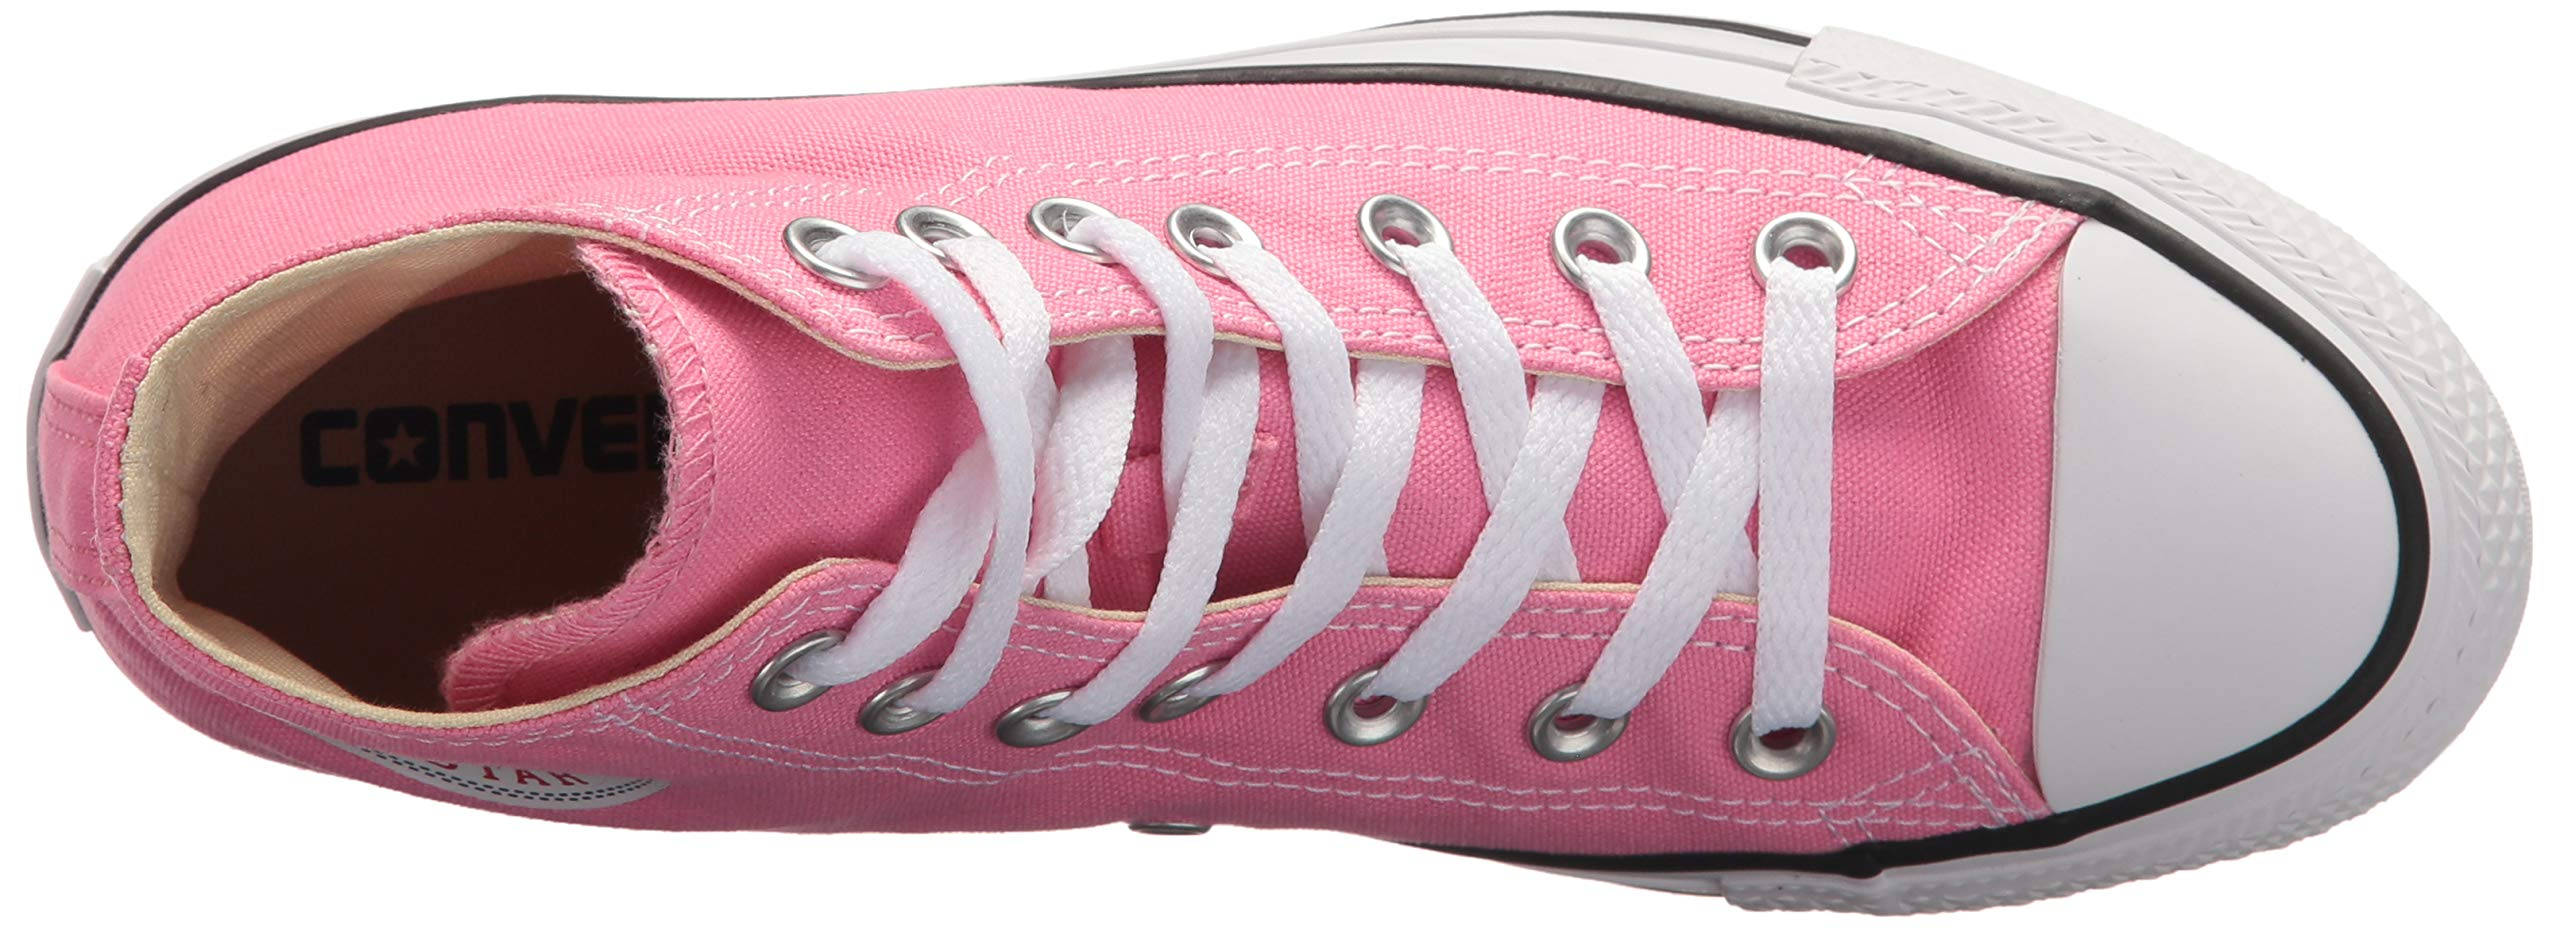 Chuck Taylor All Star Canvas High Top, Pink, 4 M US by Converse (Image #9)